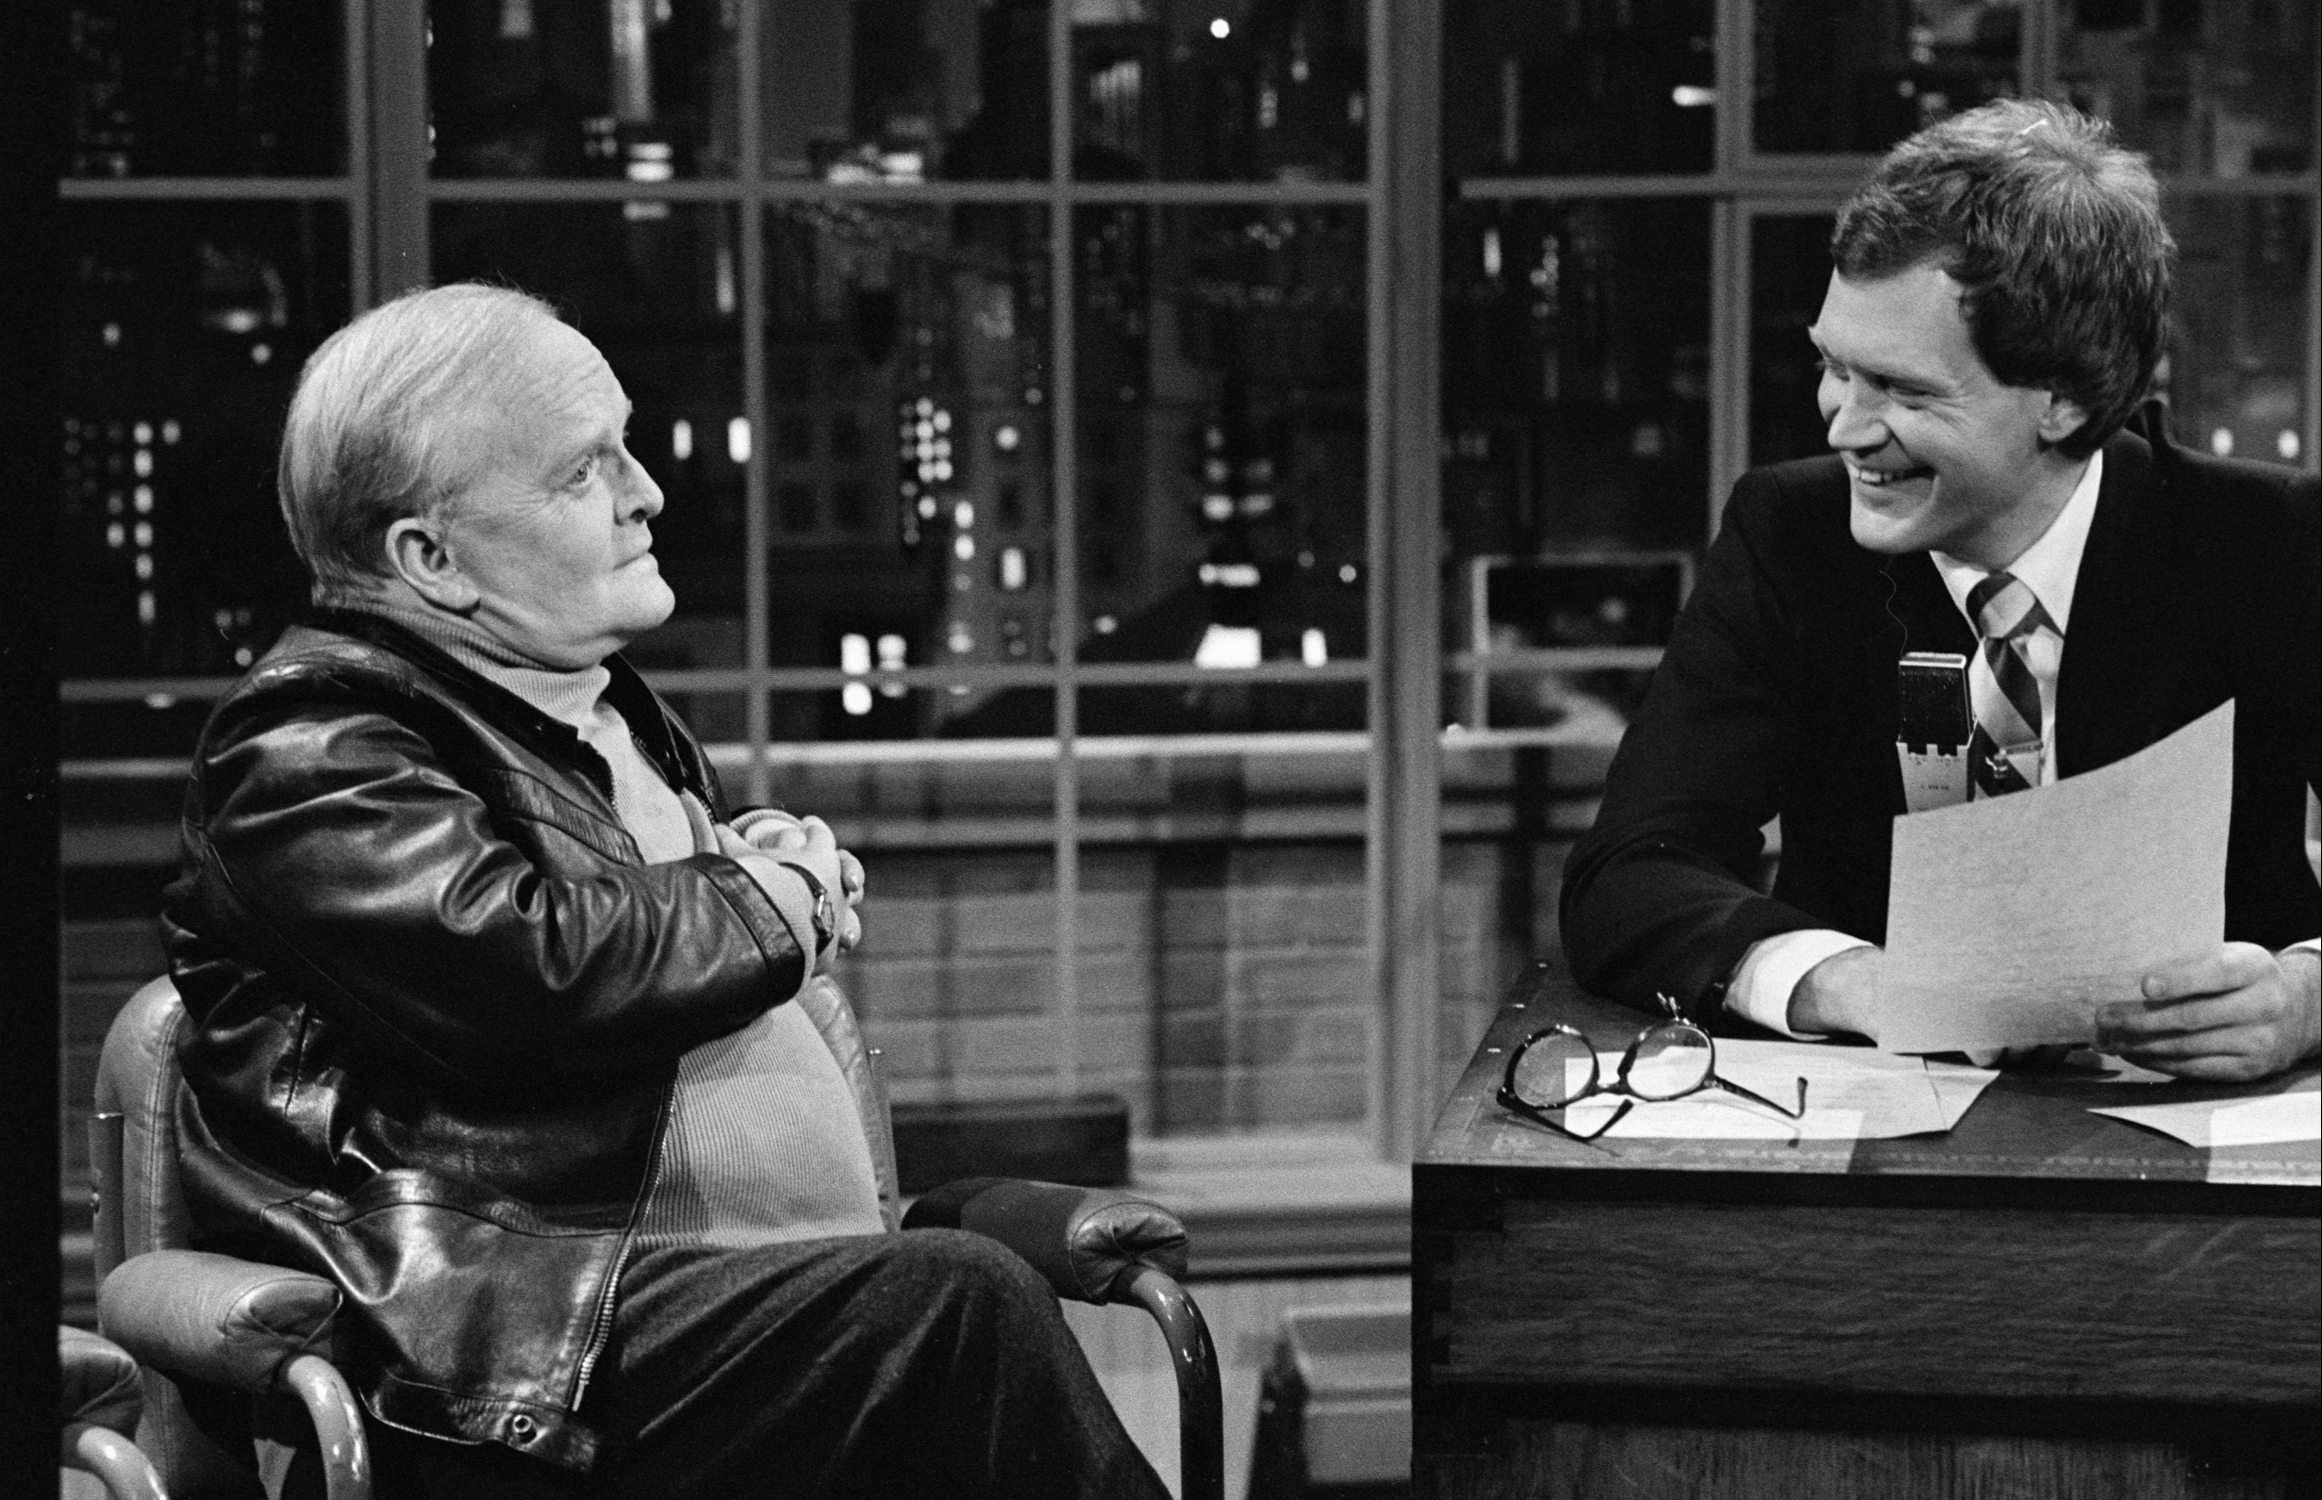 In 1980, Letterman finally got his own morning comedy show, <i>The David Letterman Show</i>. Above, he is seen interviewing Truman Capote.